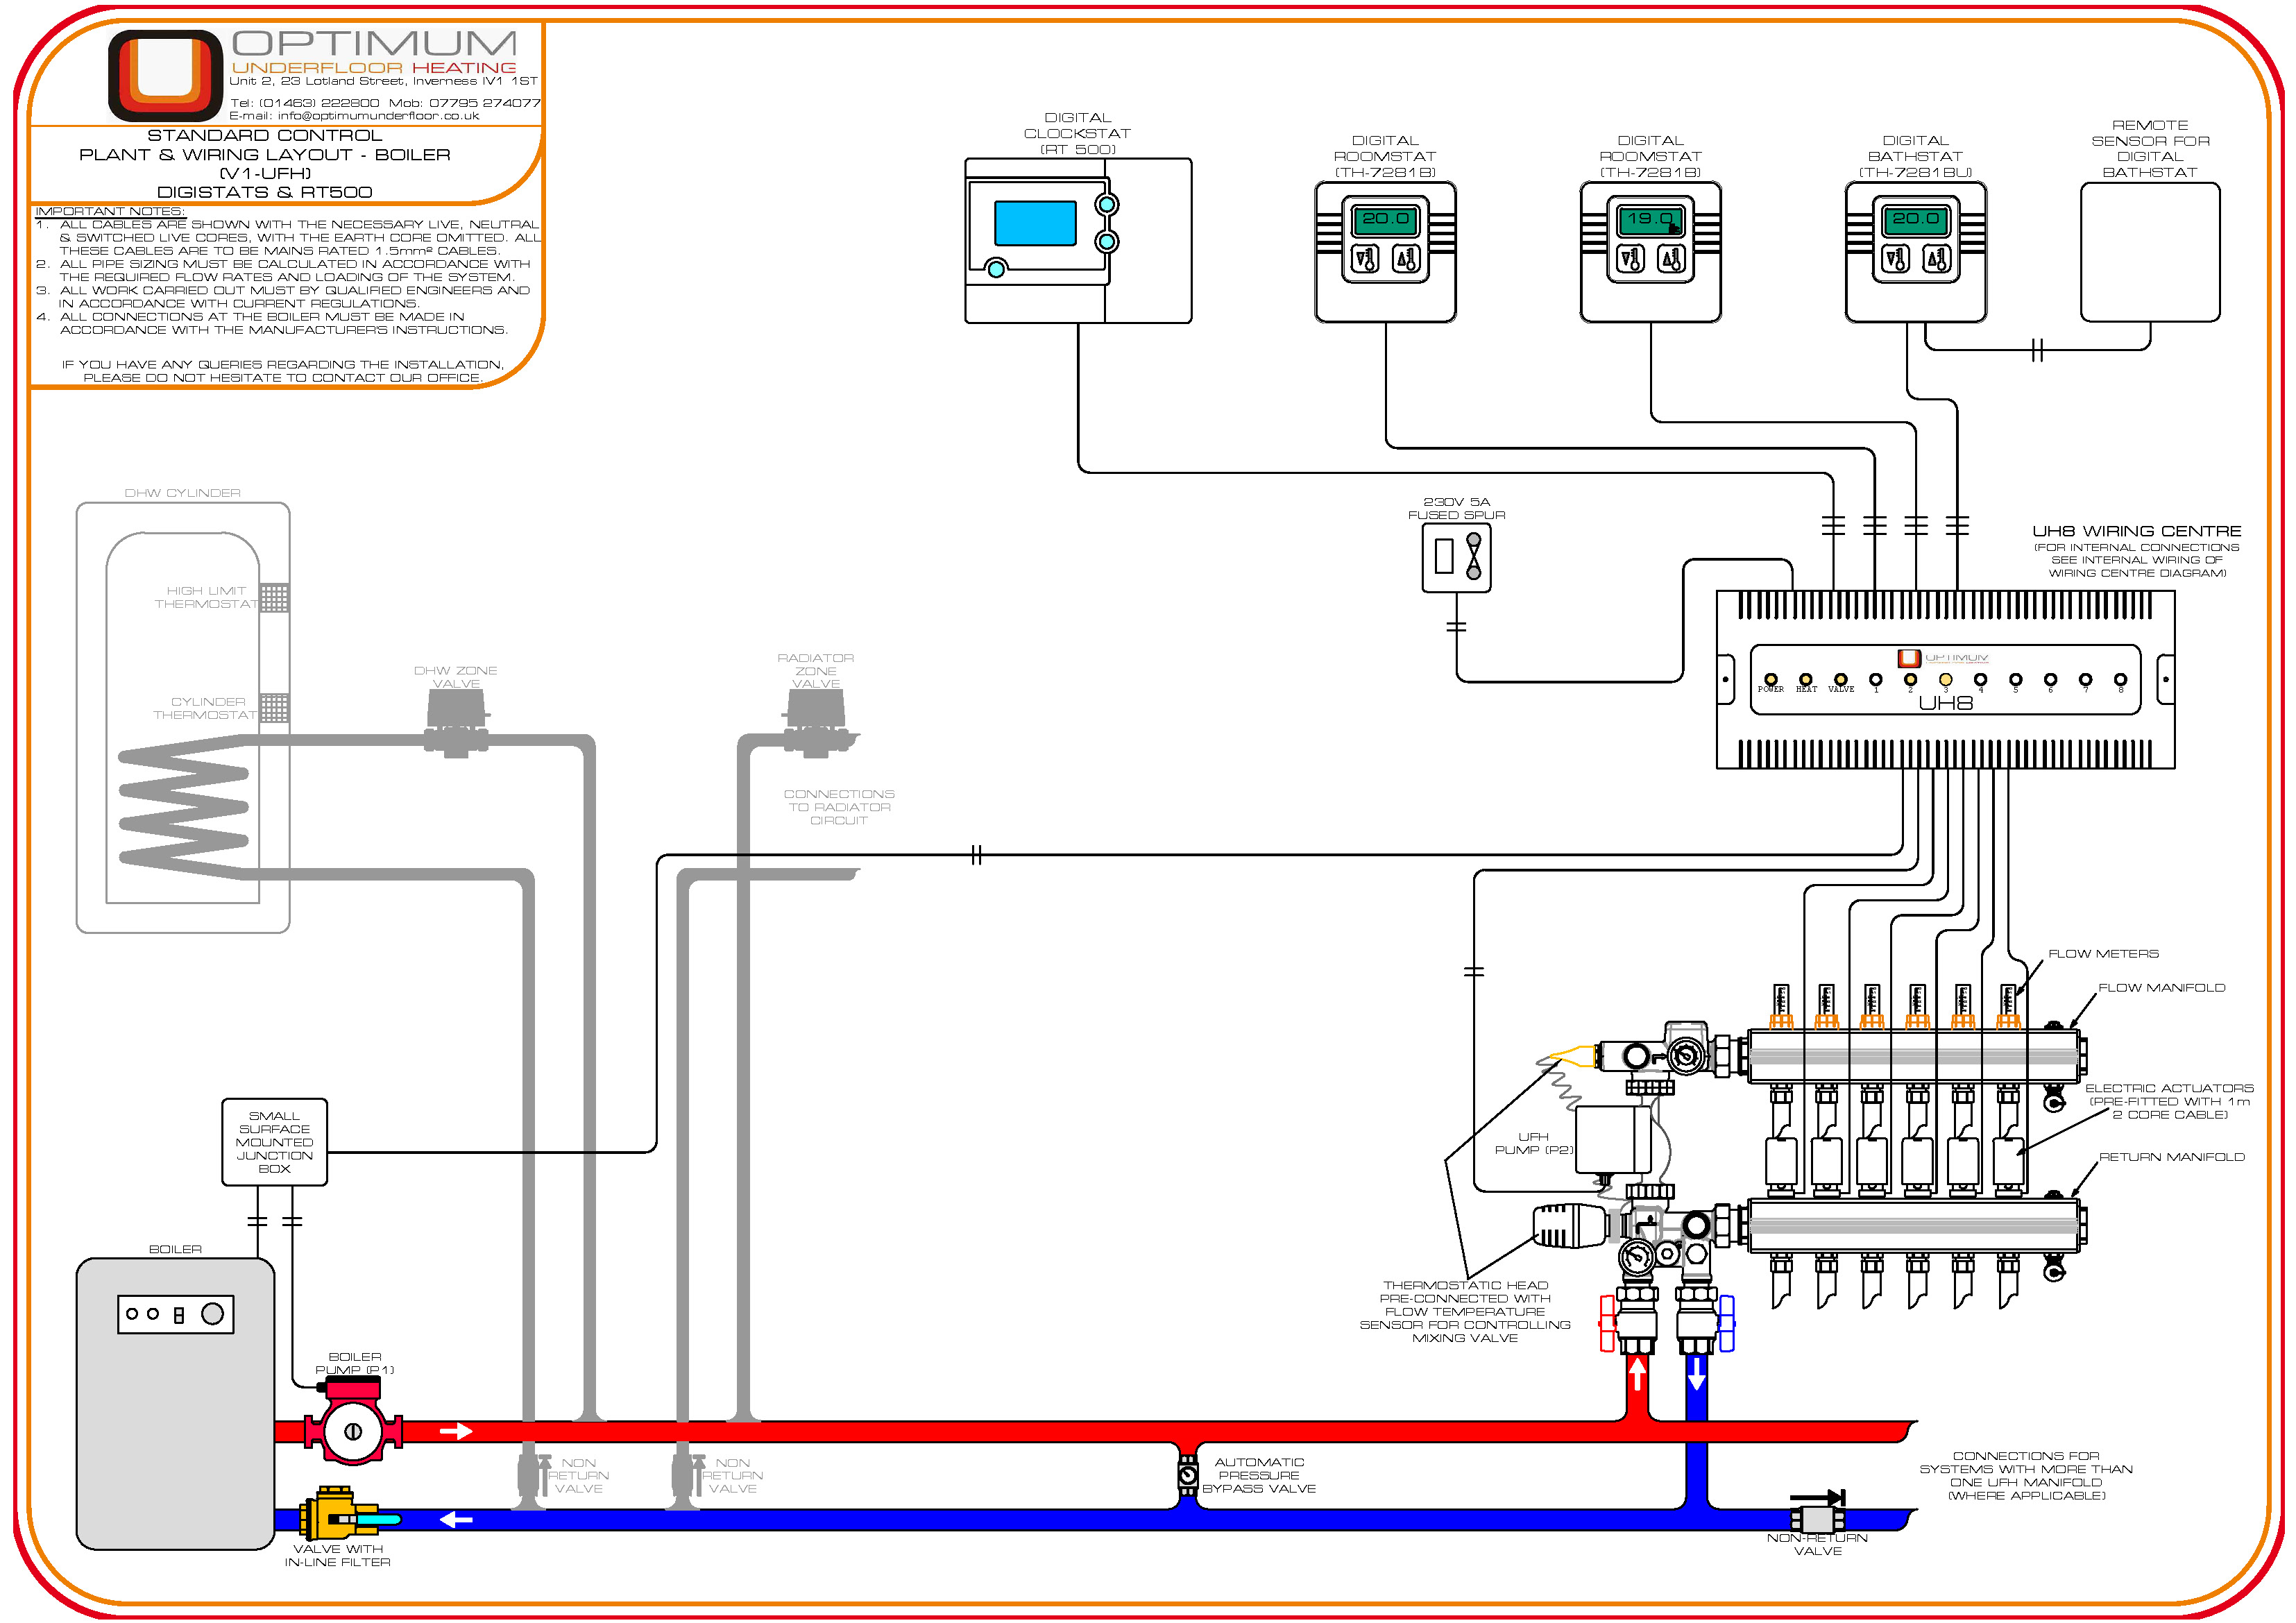 Diagram Myson Underfloor Heating Wiring Diagram Full Version Hd Quality Wiring Diagram Teethdiagram Genazzanobuonconsiglio It